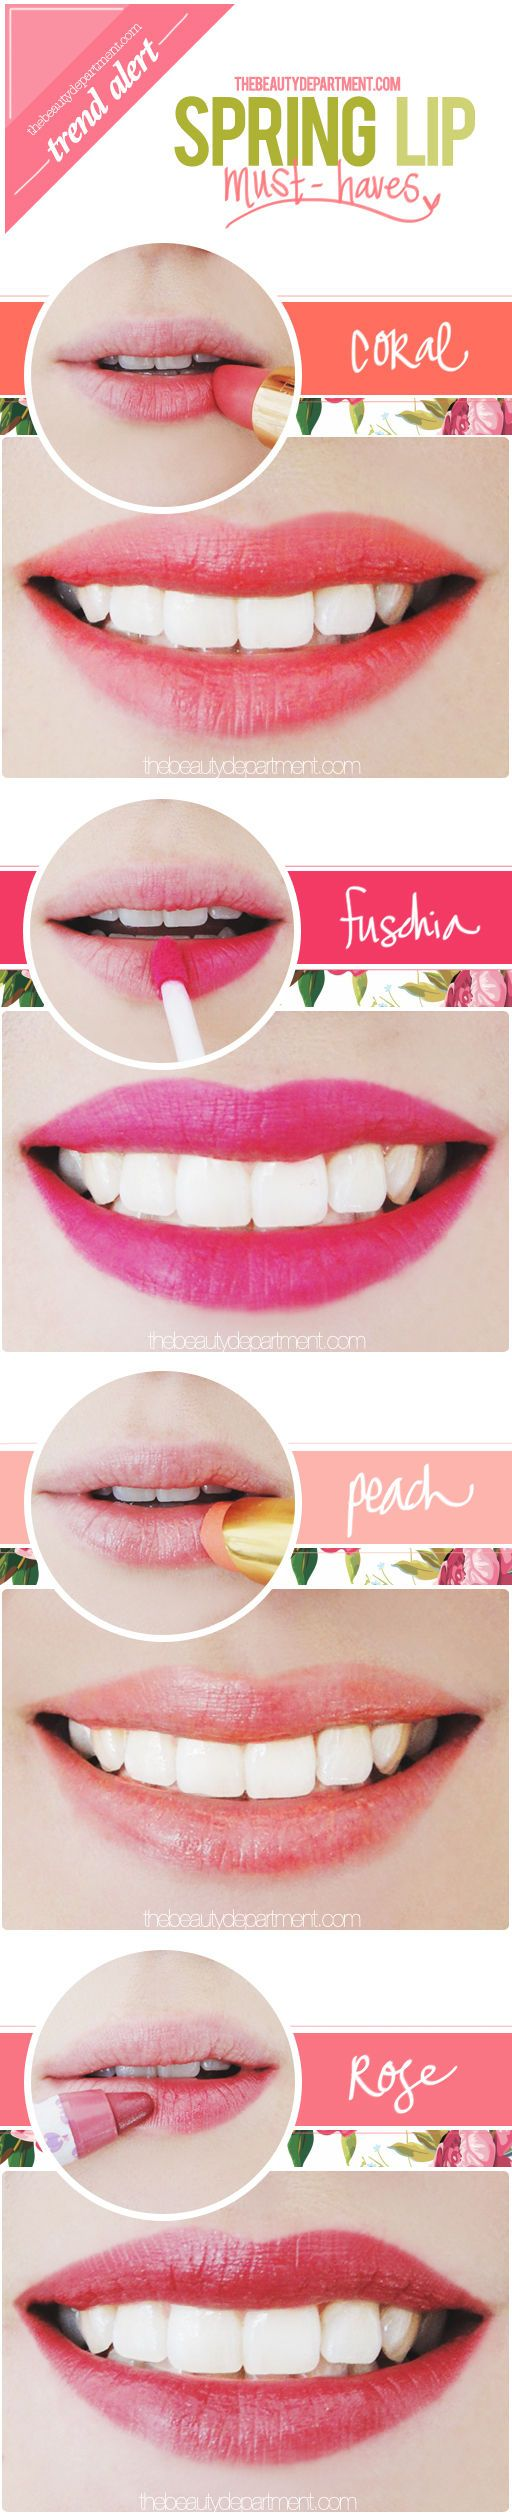 thebeautydepartment.com spring must haves http://thebeautydepartment.com/2014/05/pretty-pick-me-up/